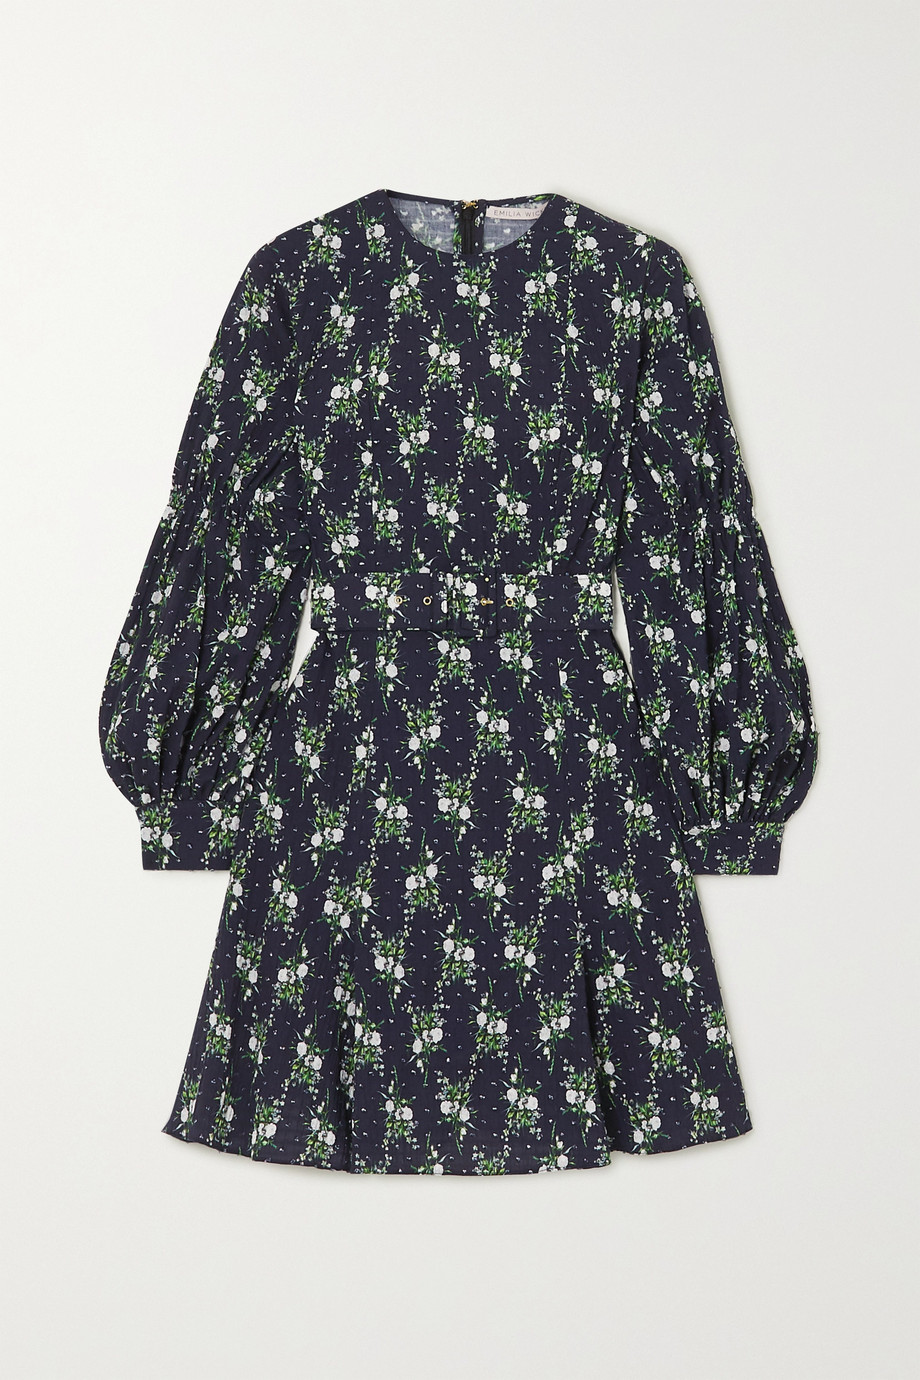 Emilia Wickstead Azzura belted floral-print  Swiss-dot cotton-seersucker mini dress